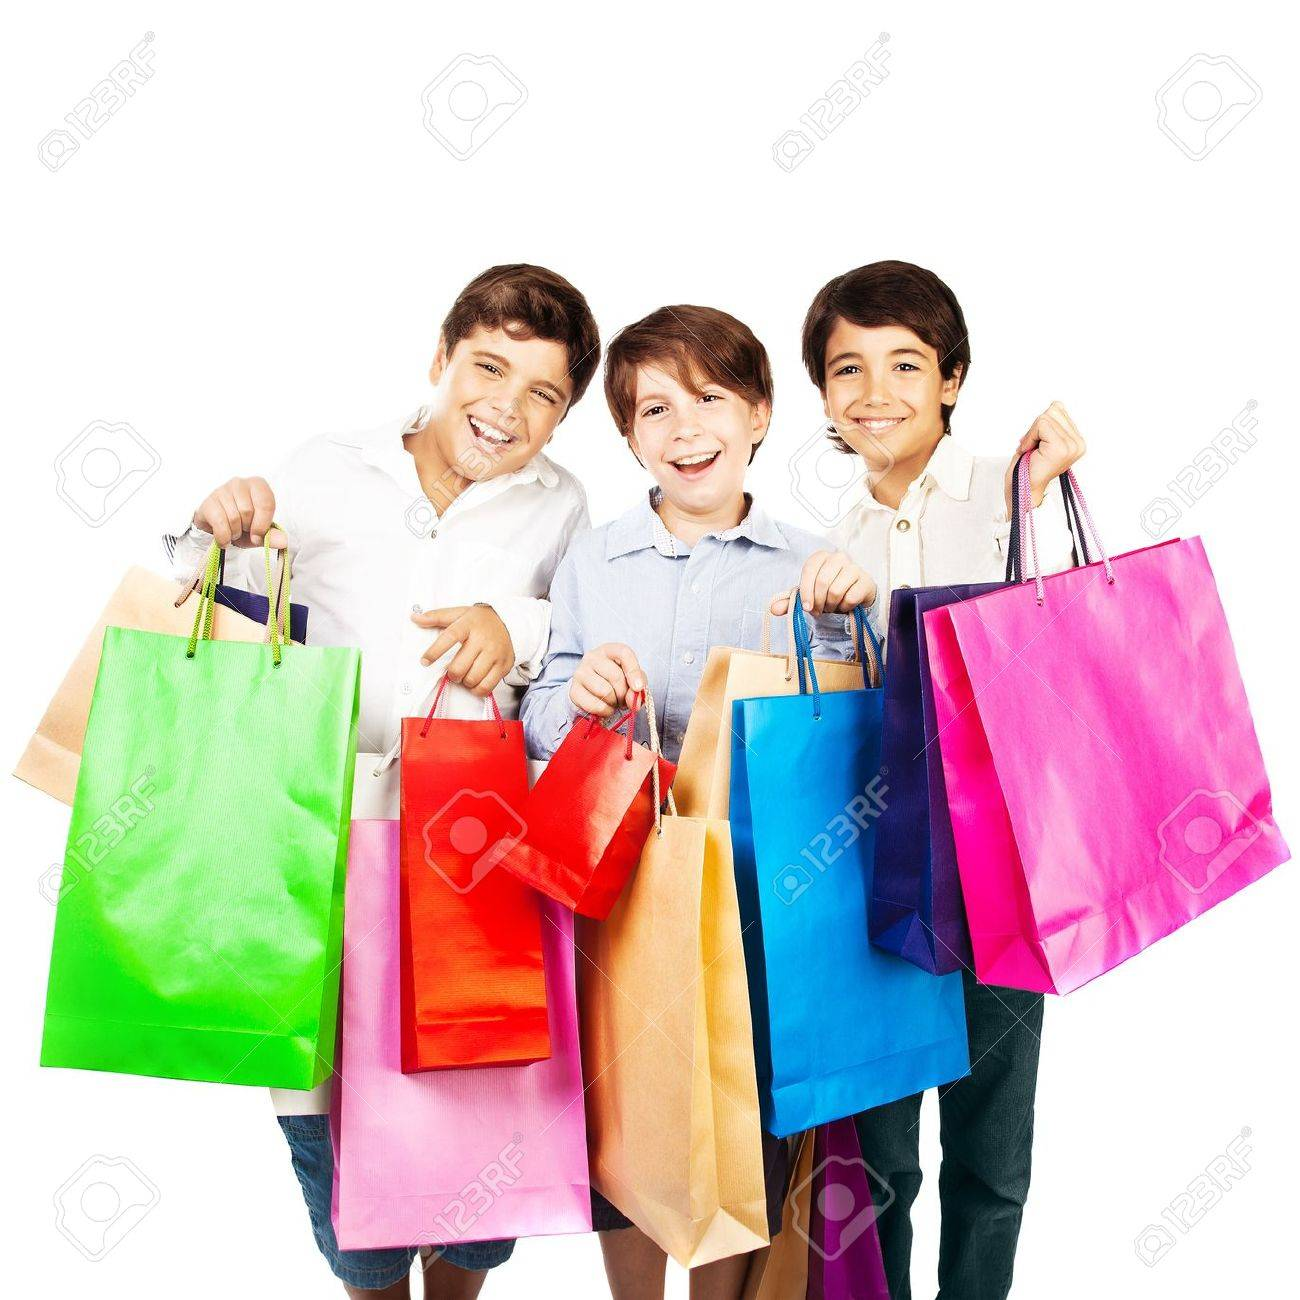 Happy Boys With Gifts, Kids Carrying Colorful Shopping Bags With ...